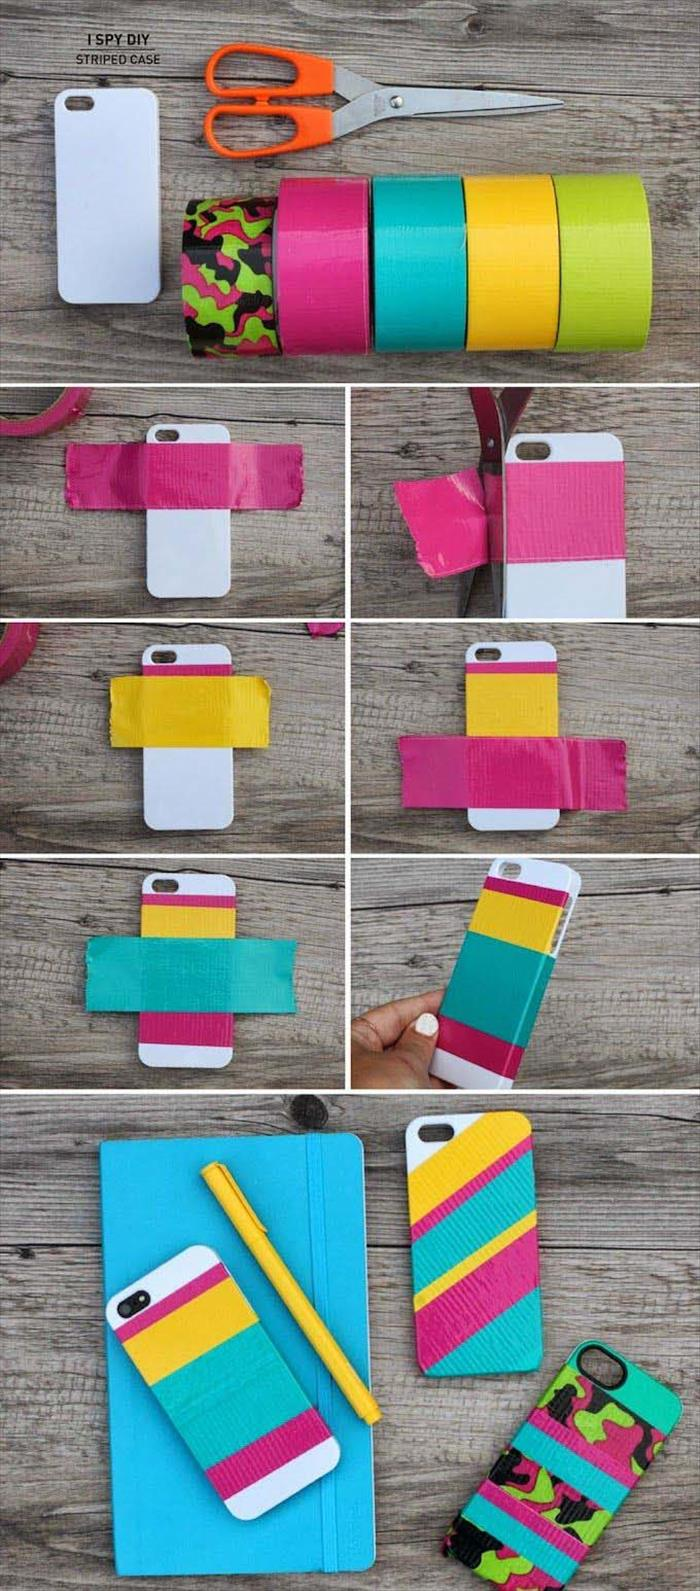 wallpaper craft ideas diy craft ideas 38 pics 3198